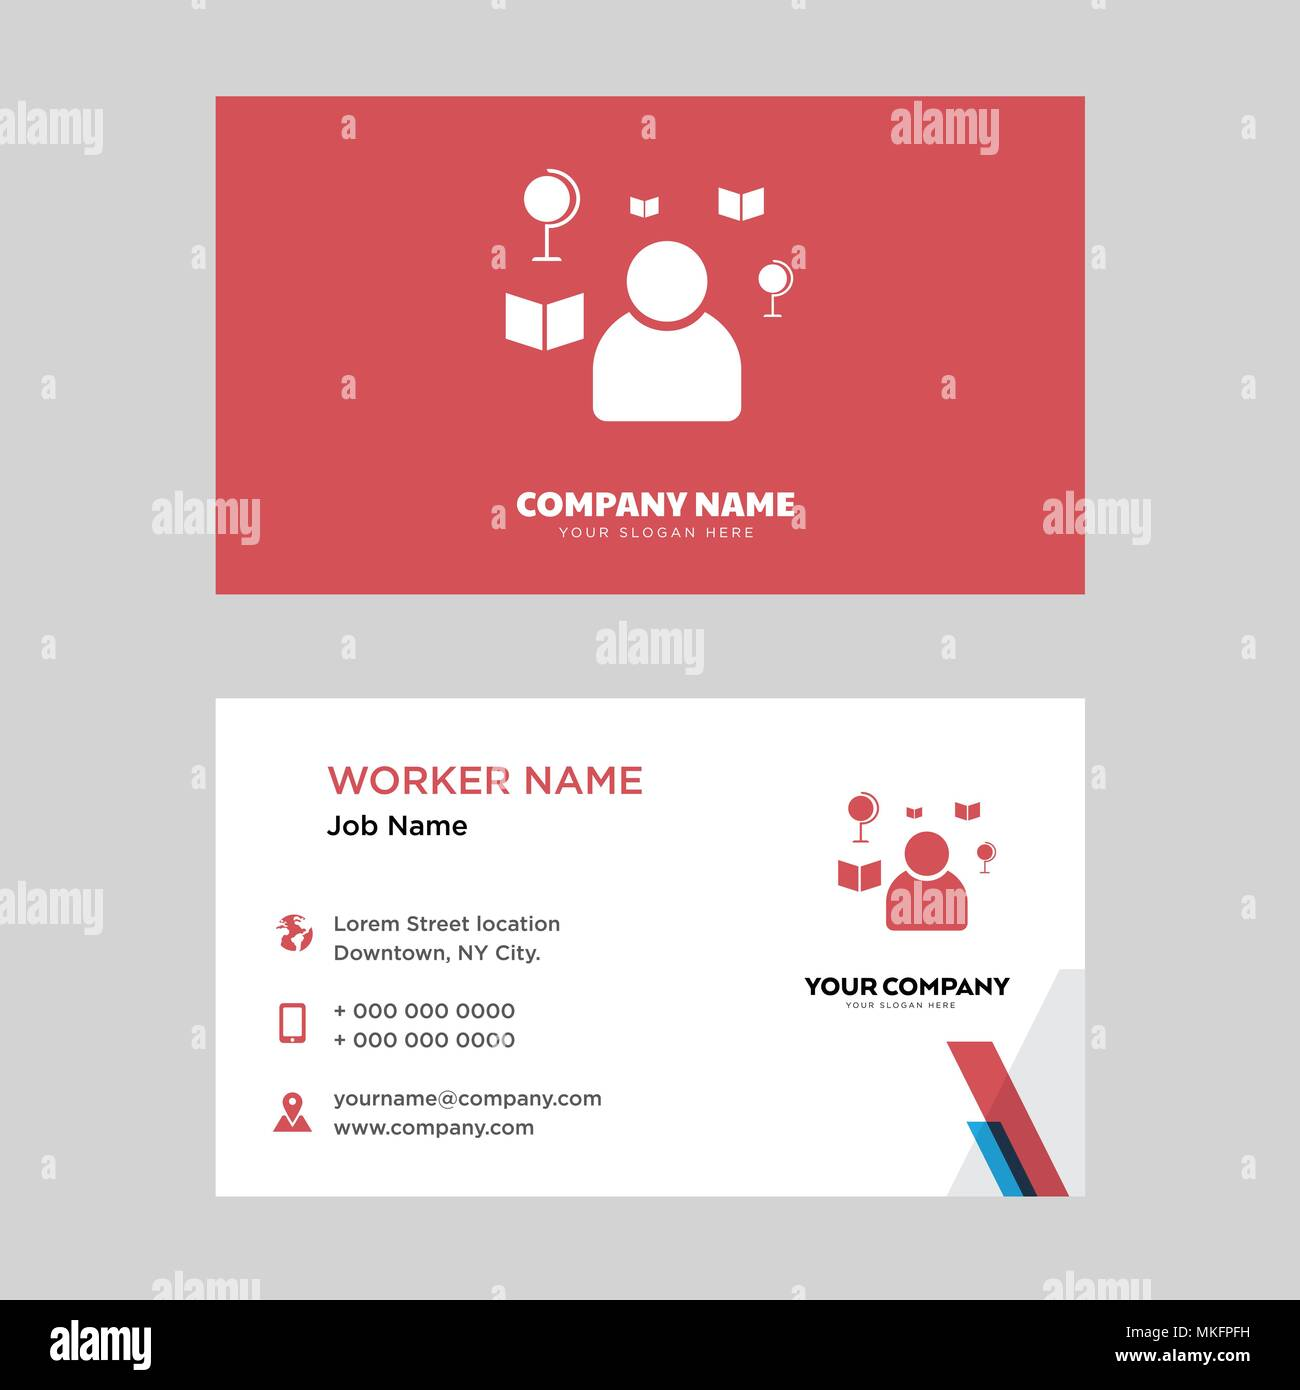 teacher business card design template visiting for your company modern horizontal identity card vector - Teacher Business Cards